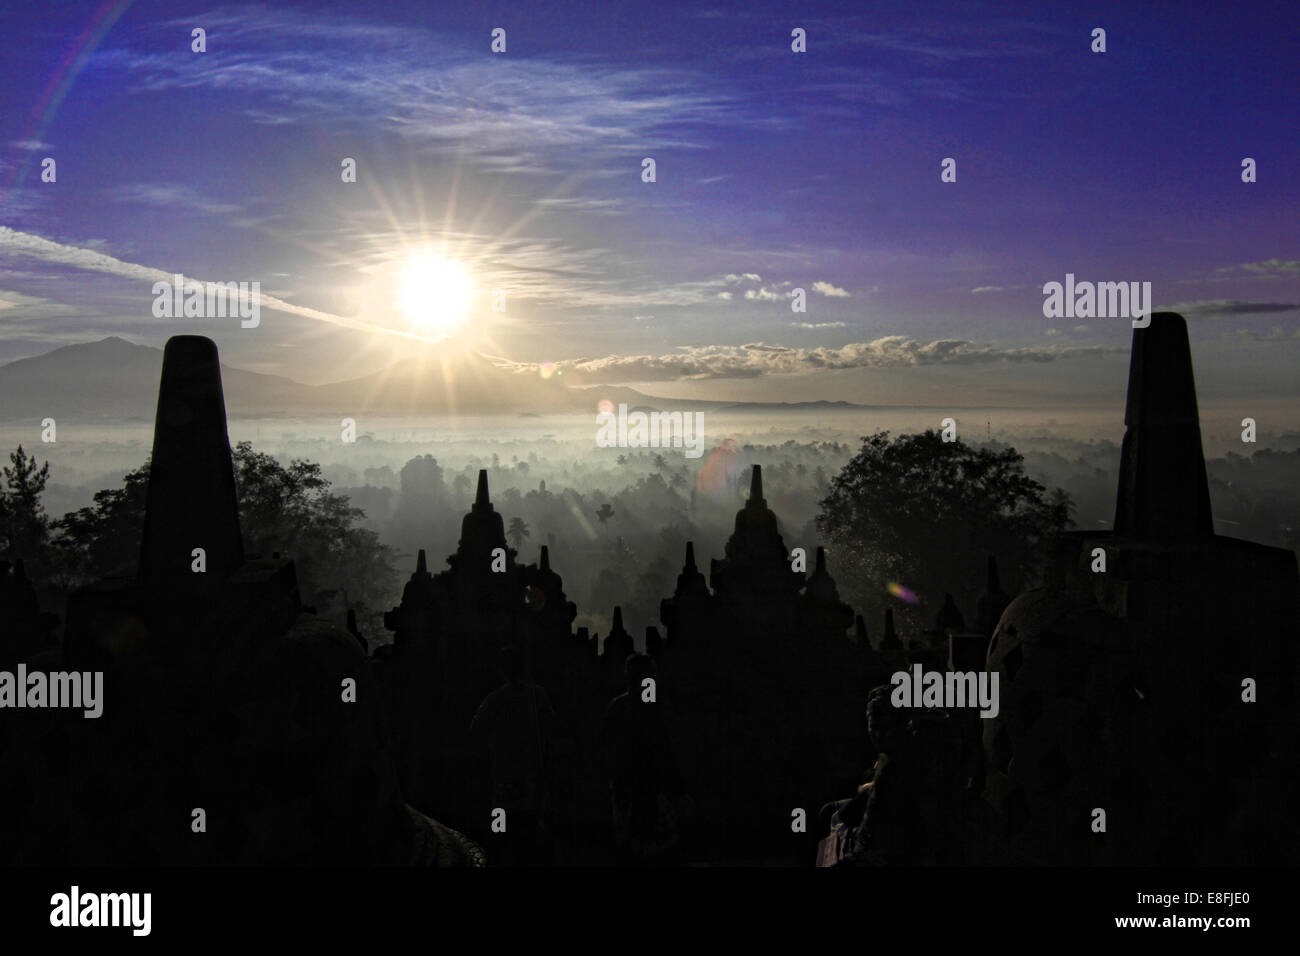 Indonesia, Central Java, Magelang, Silhouette of Borobudur Temple, 9th century - Stock Image